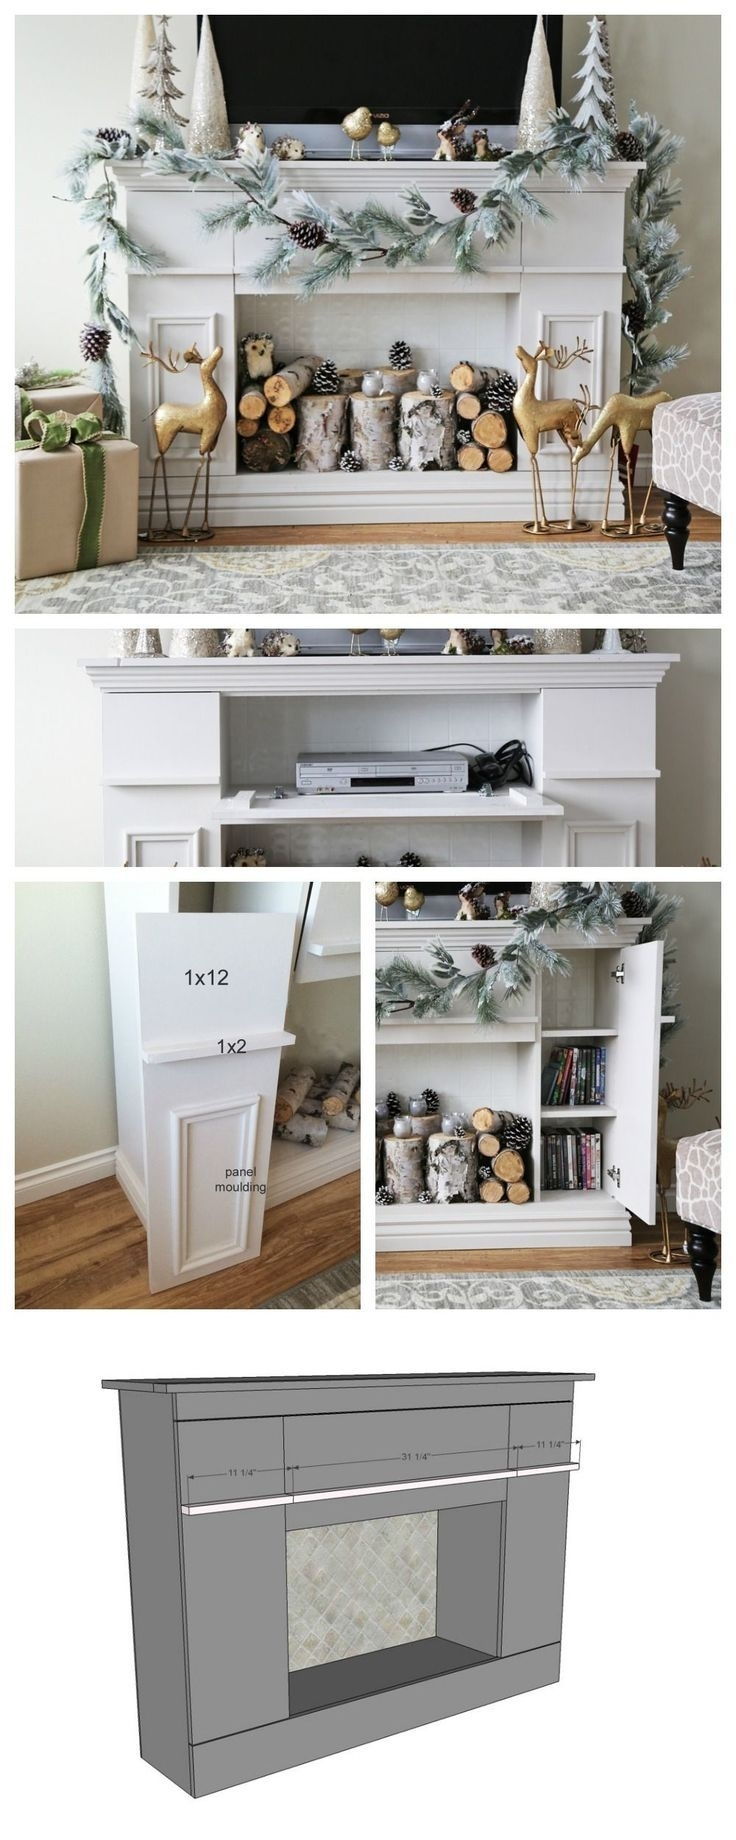 9 Best Fireplace Images On Pinterest | Fire Places, Living Room And With Recent Marbled Axton Sideboards (View 15 of 20)